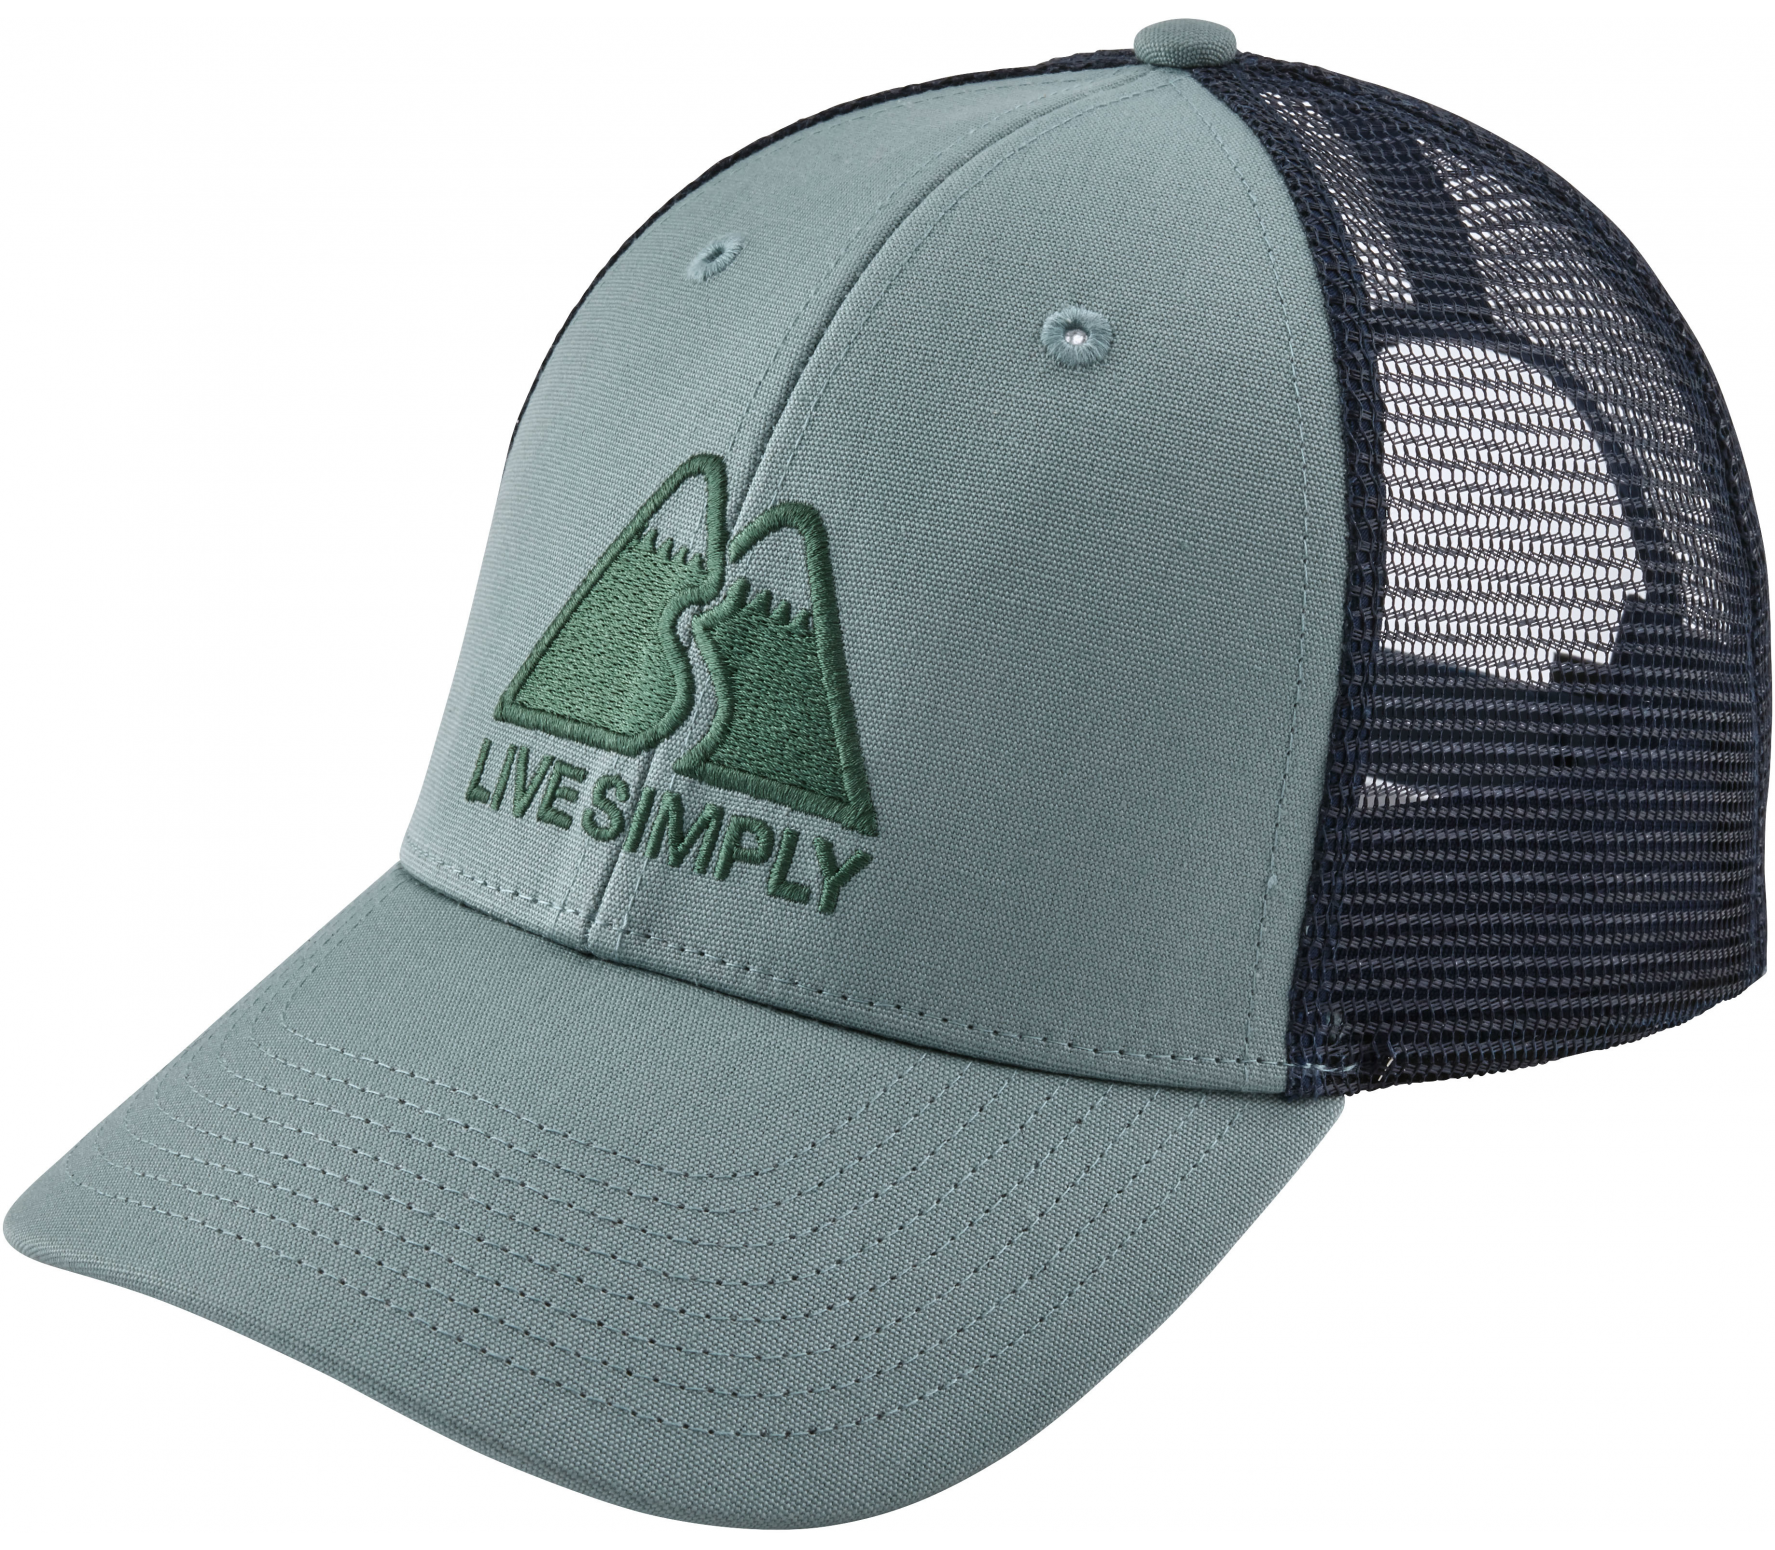 Patagonia - Live Simply Winding LoPro Trucker cap (grey)